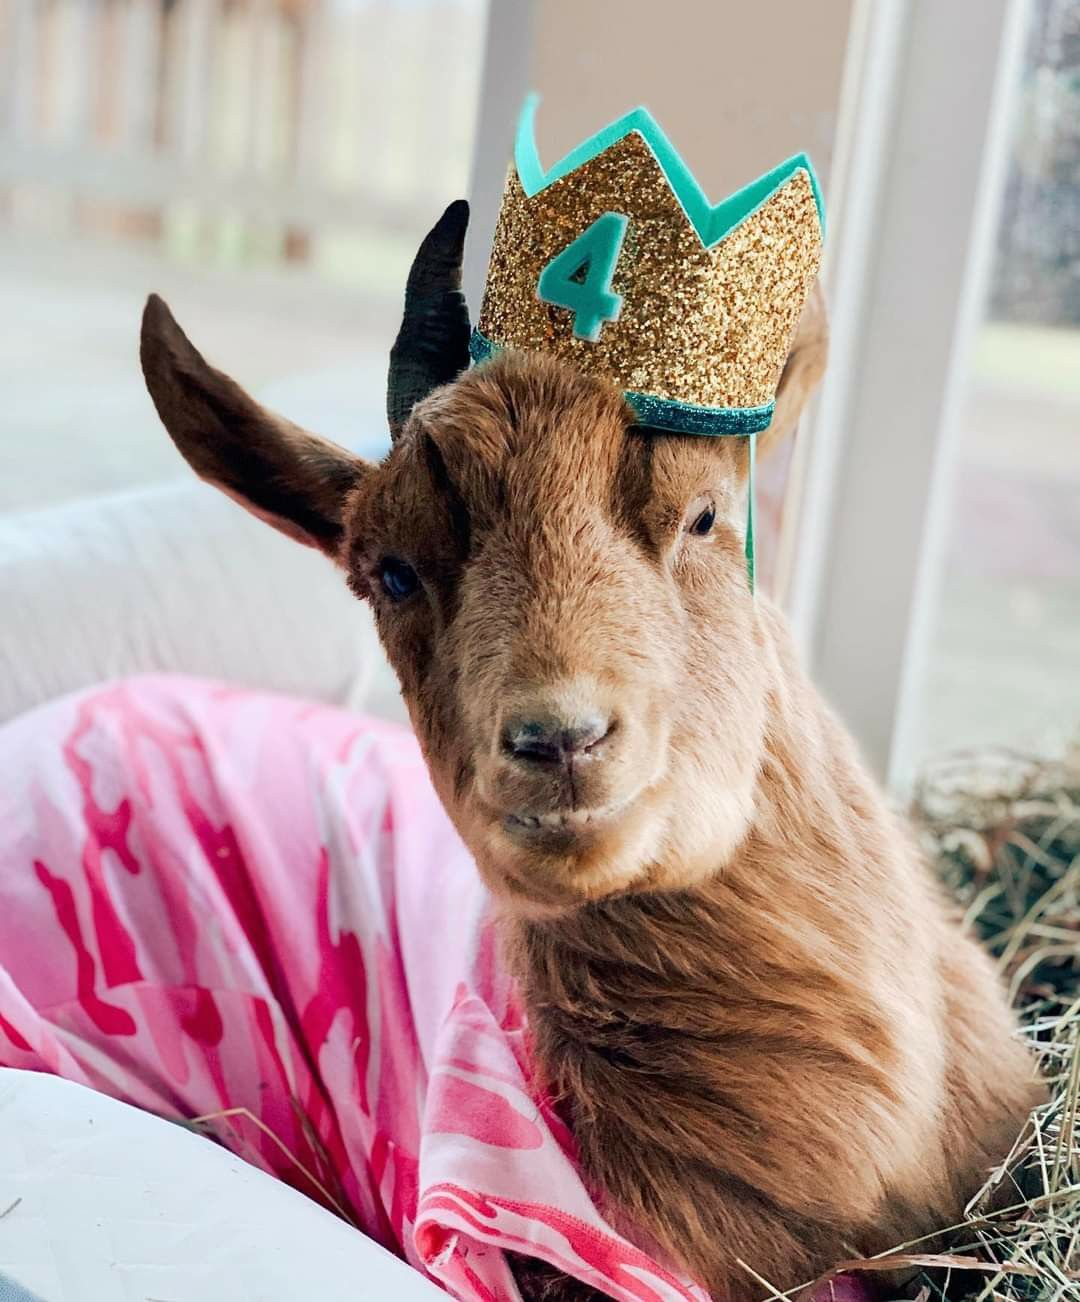 Josie On Her 4th Birthday 1 10 21 From Goats Of Anarchy On Facebook In 2021 Cute Funny Animals Funny Animals Animals